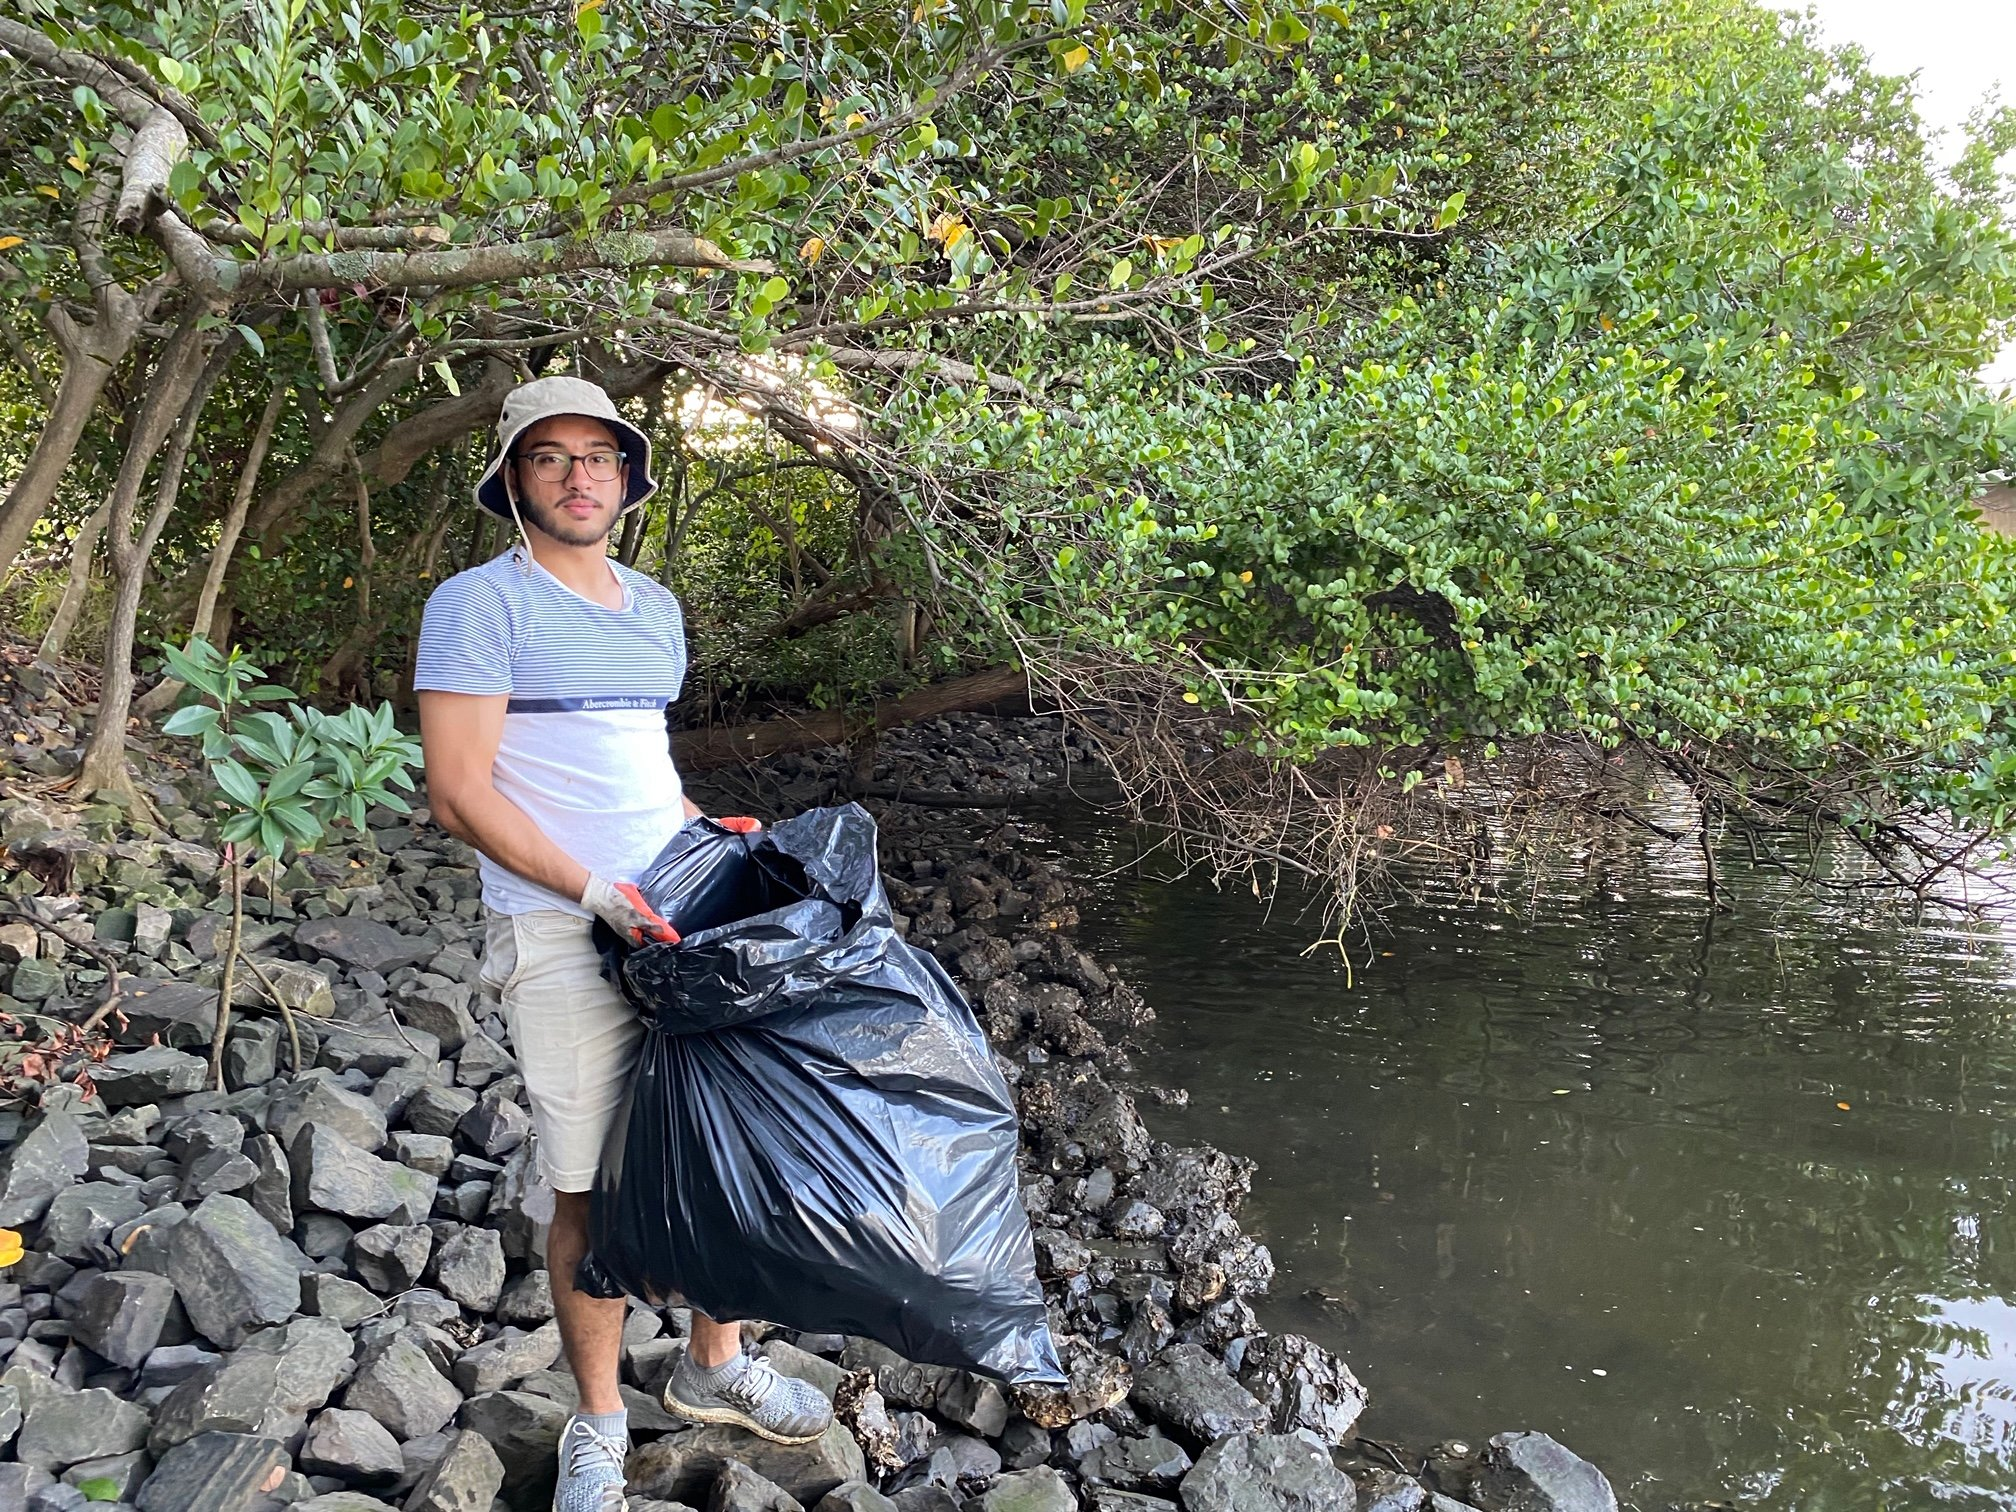 Evan Cabrera in mangroves with trash bag